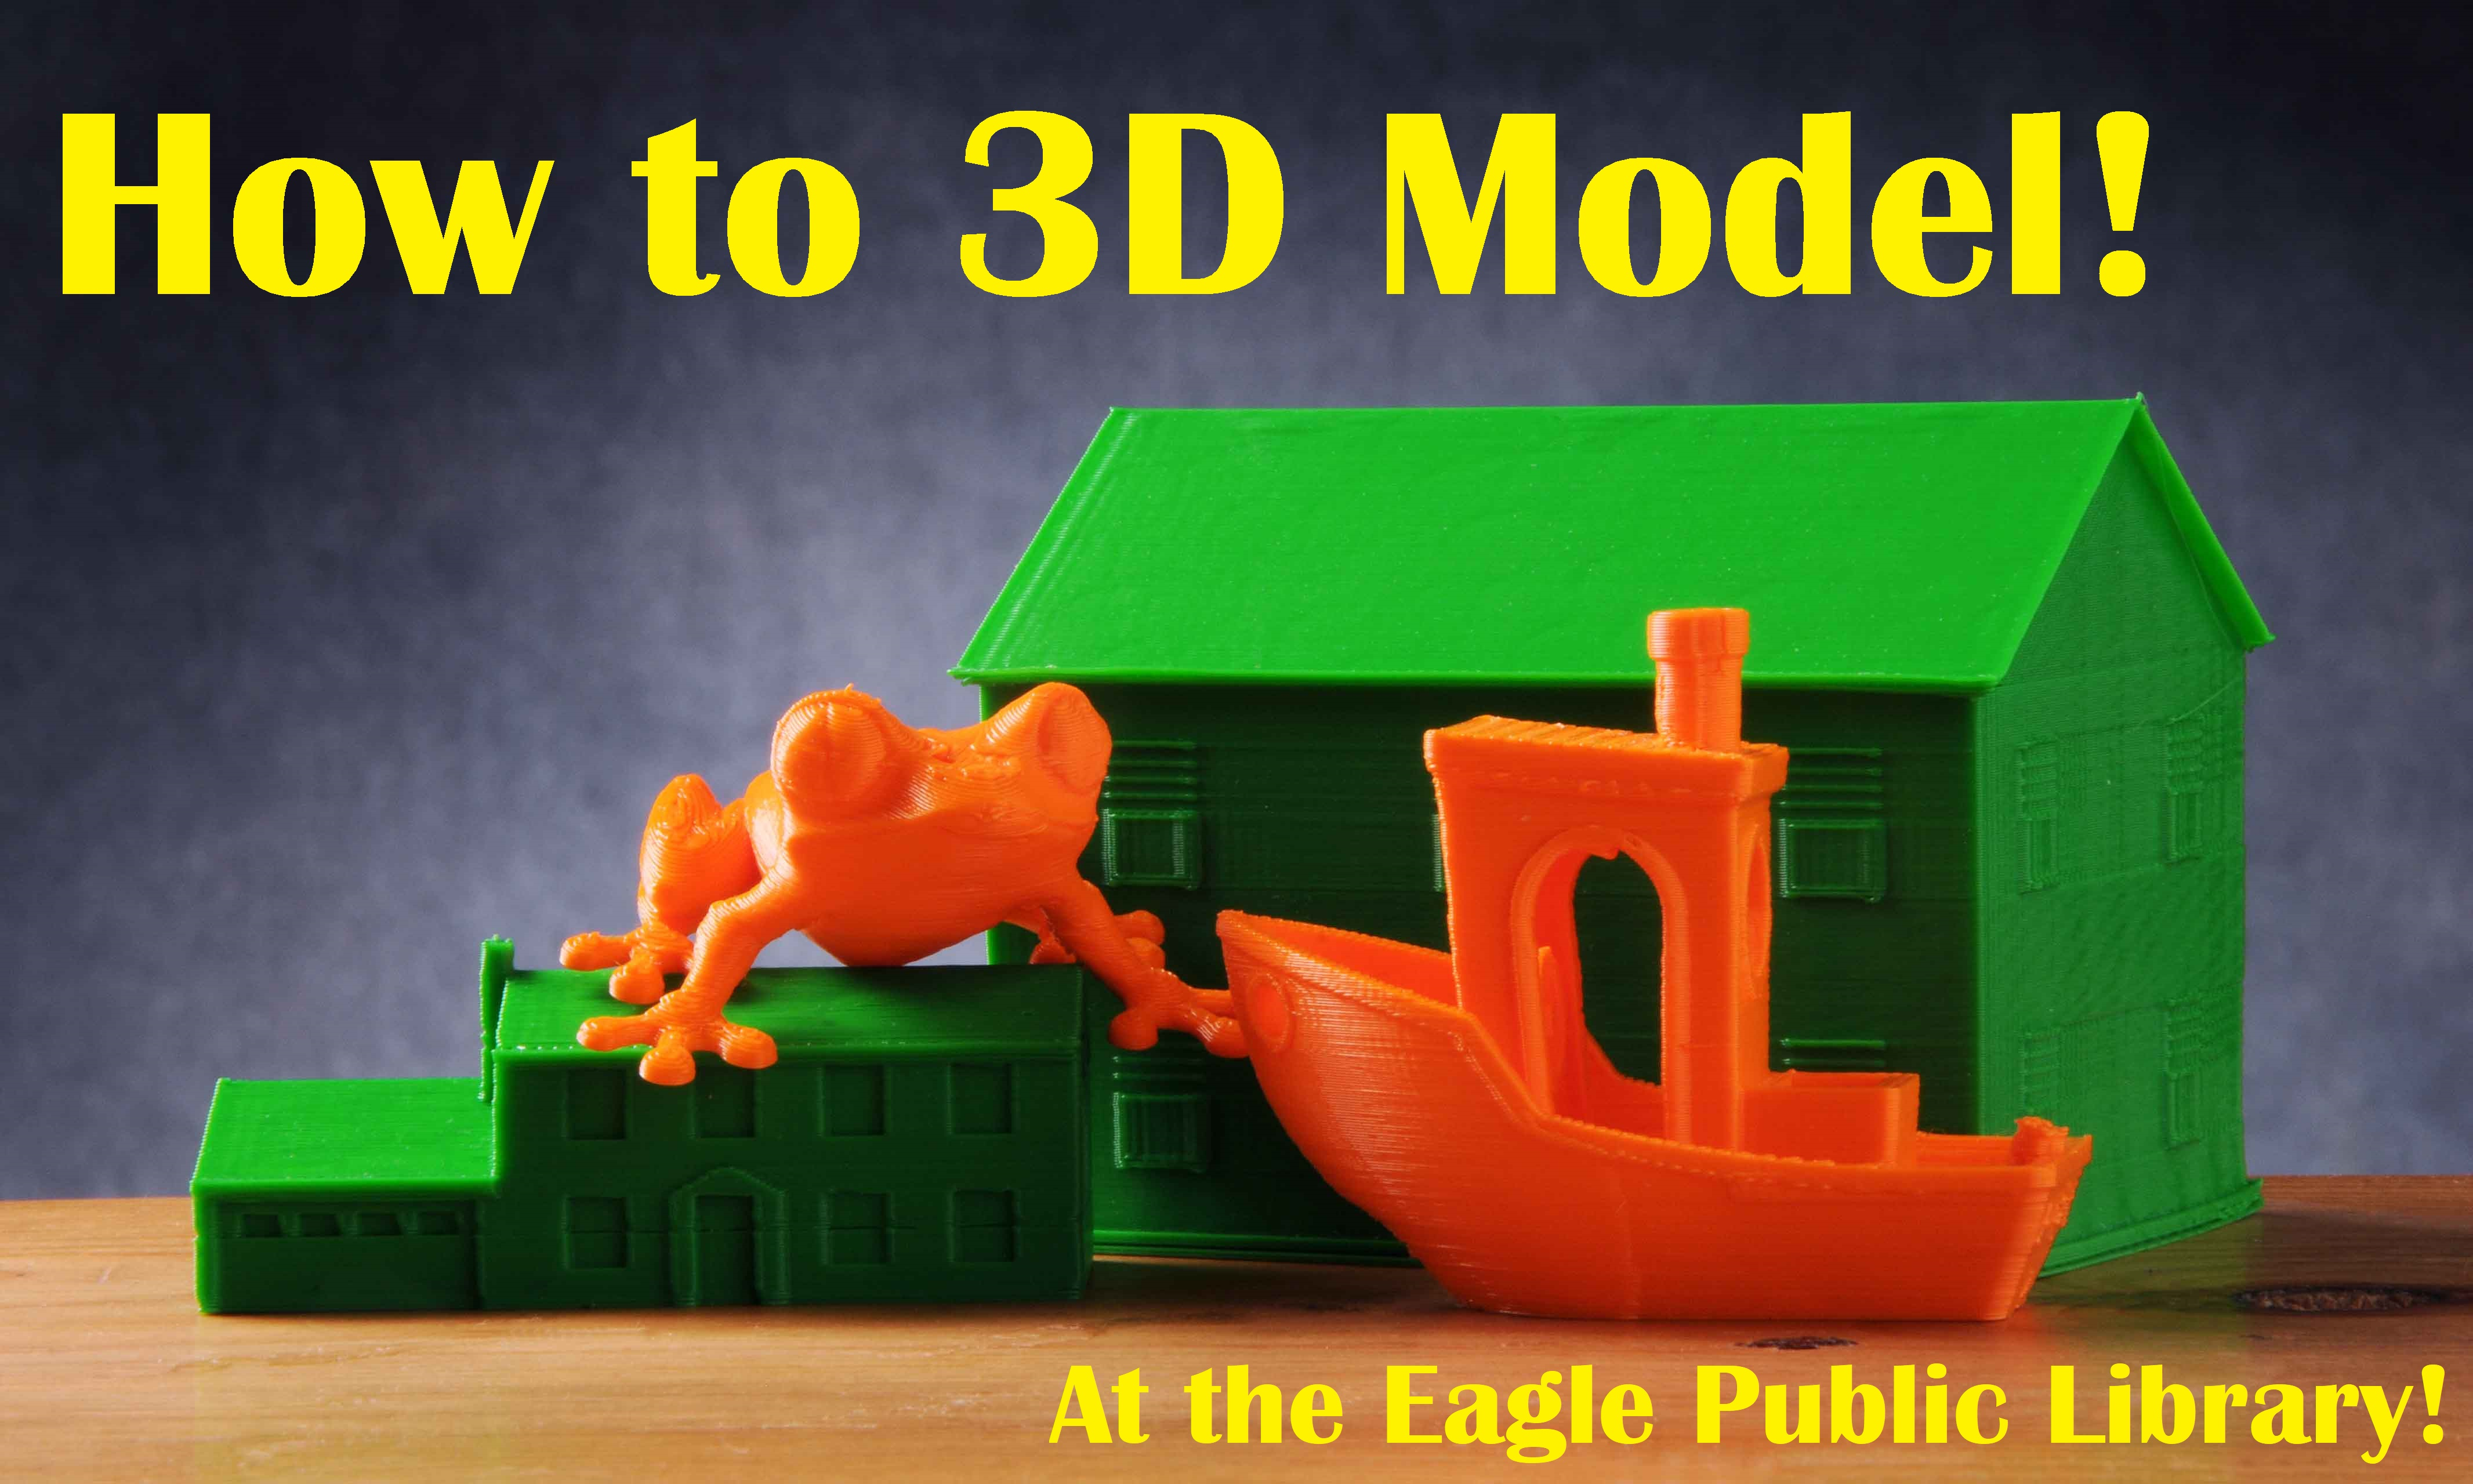 How to 3D Model!